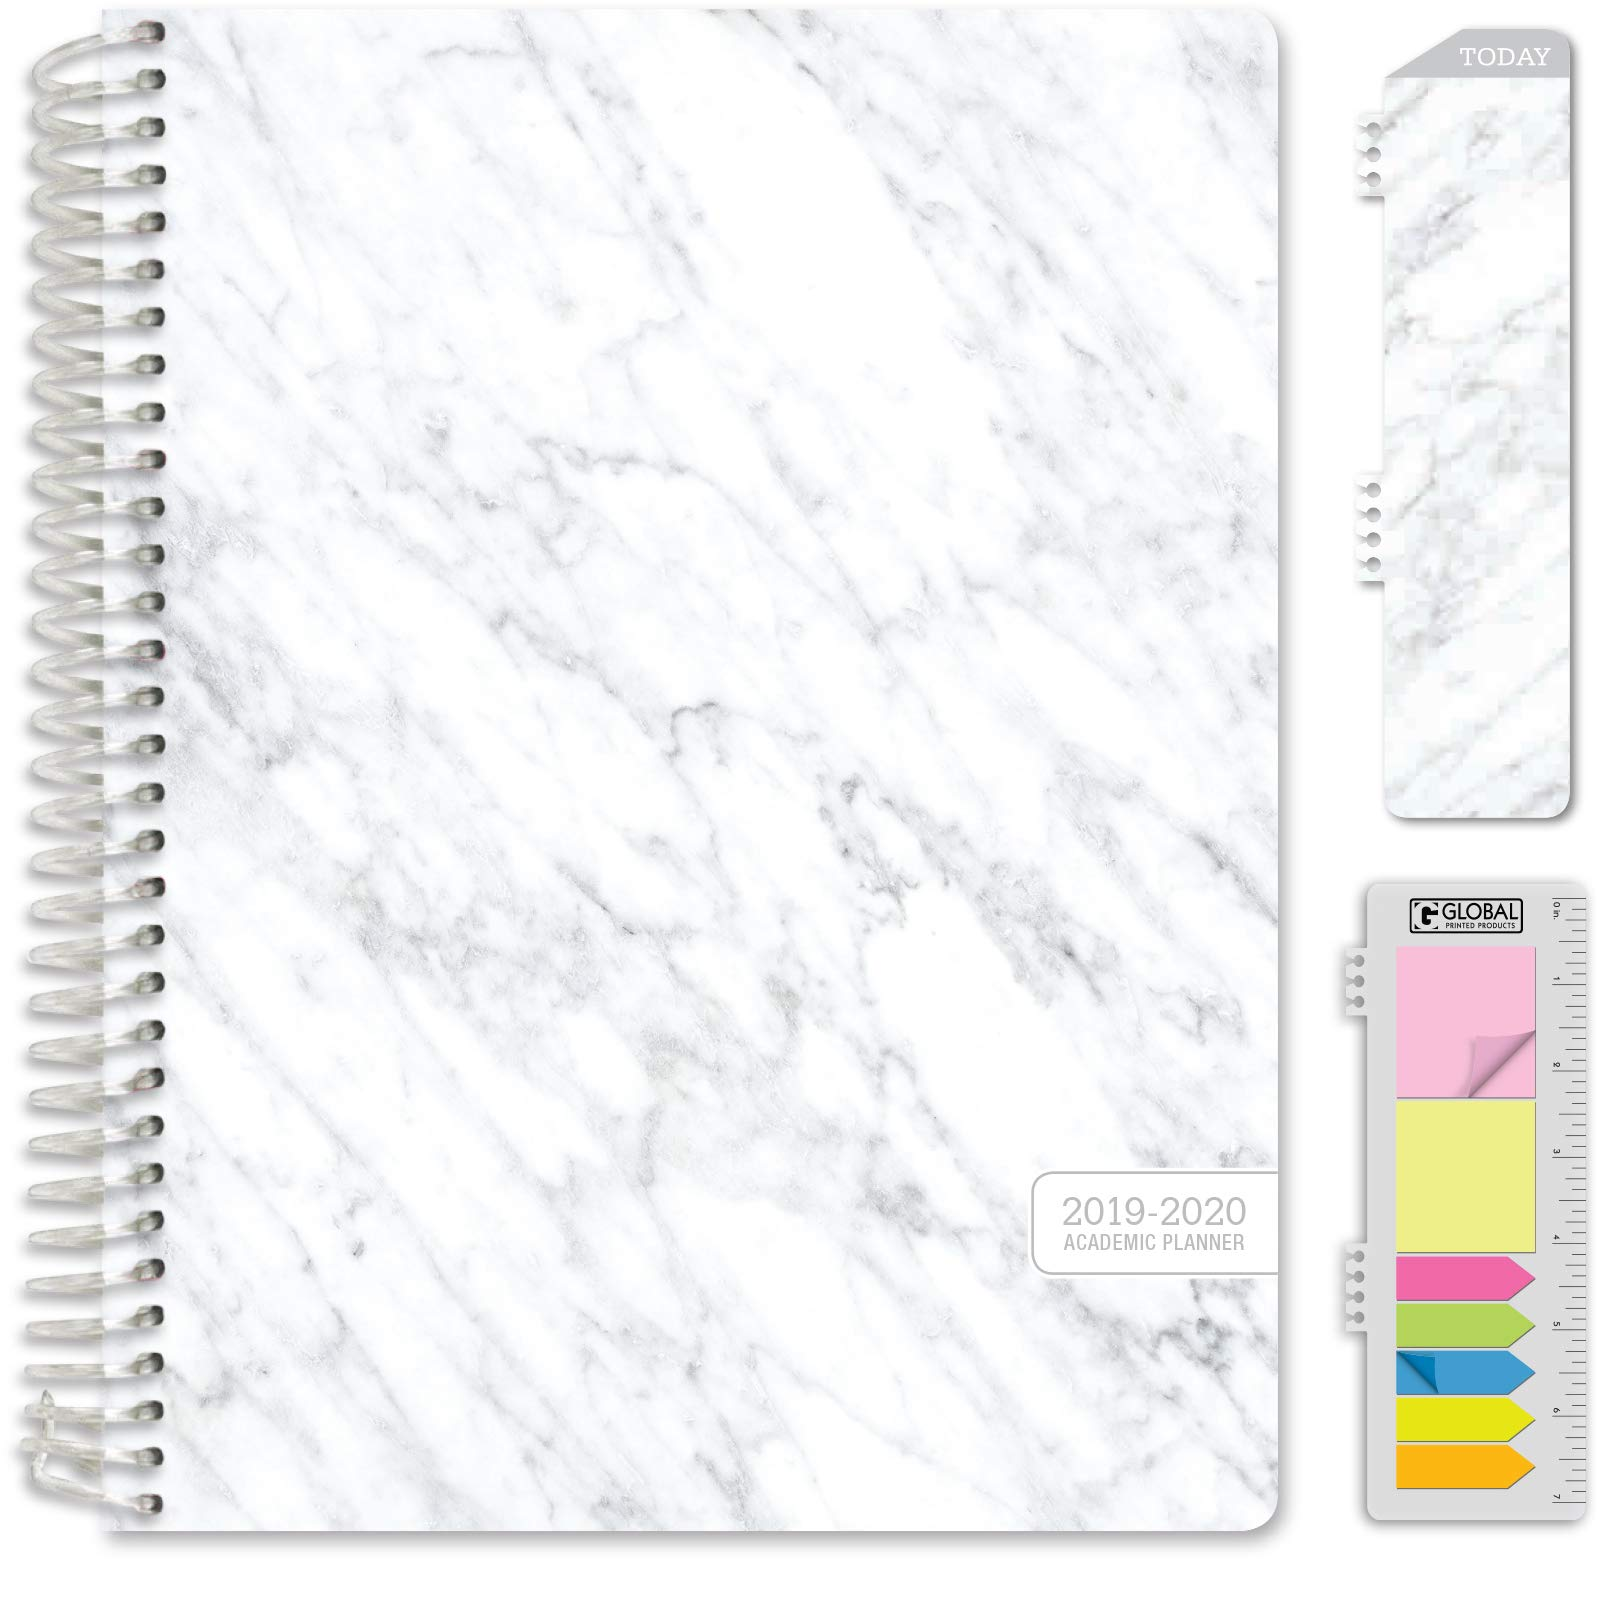 HARDCOVER Academic Year 2019 Planner: (July 2019 Through July 2020) 8.5''x11'' Daily Weekly Monthly Planner Yearly Agenda. Bonus Bookmark, Pocket Folder and Sticky Note Set (Grey Marble)